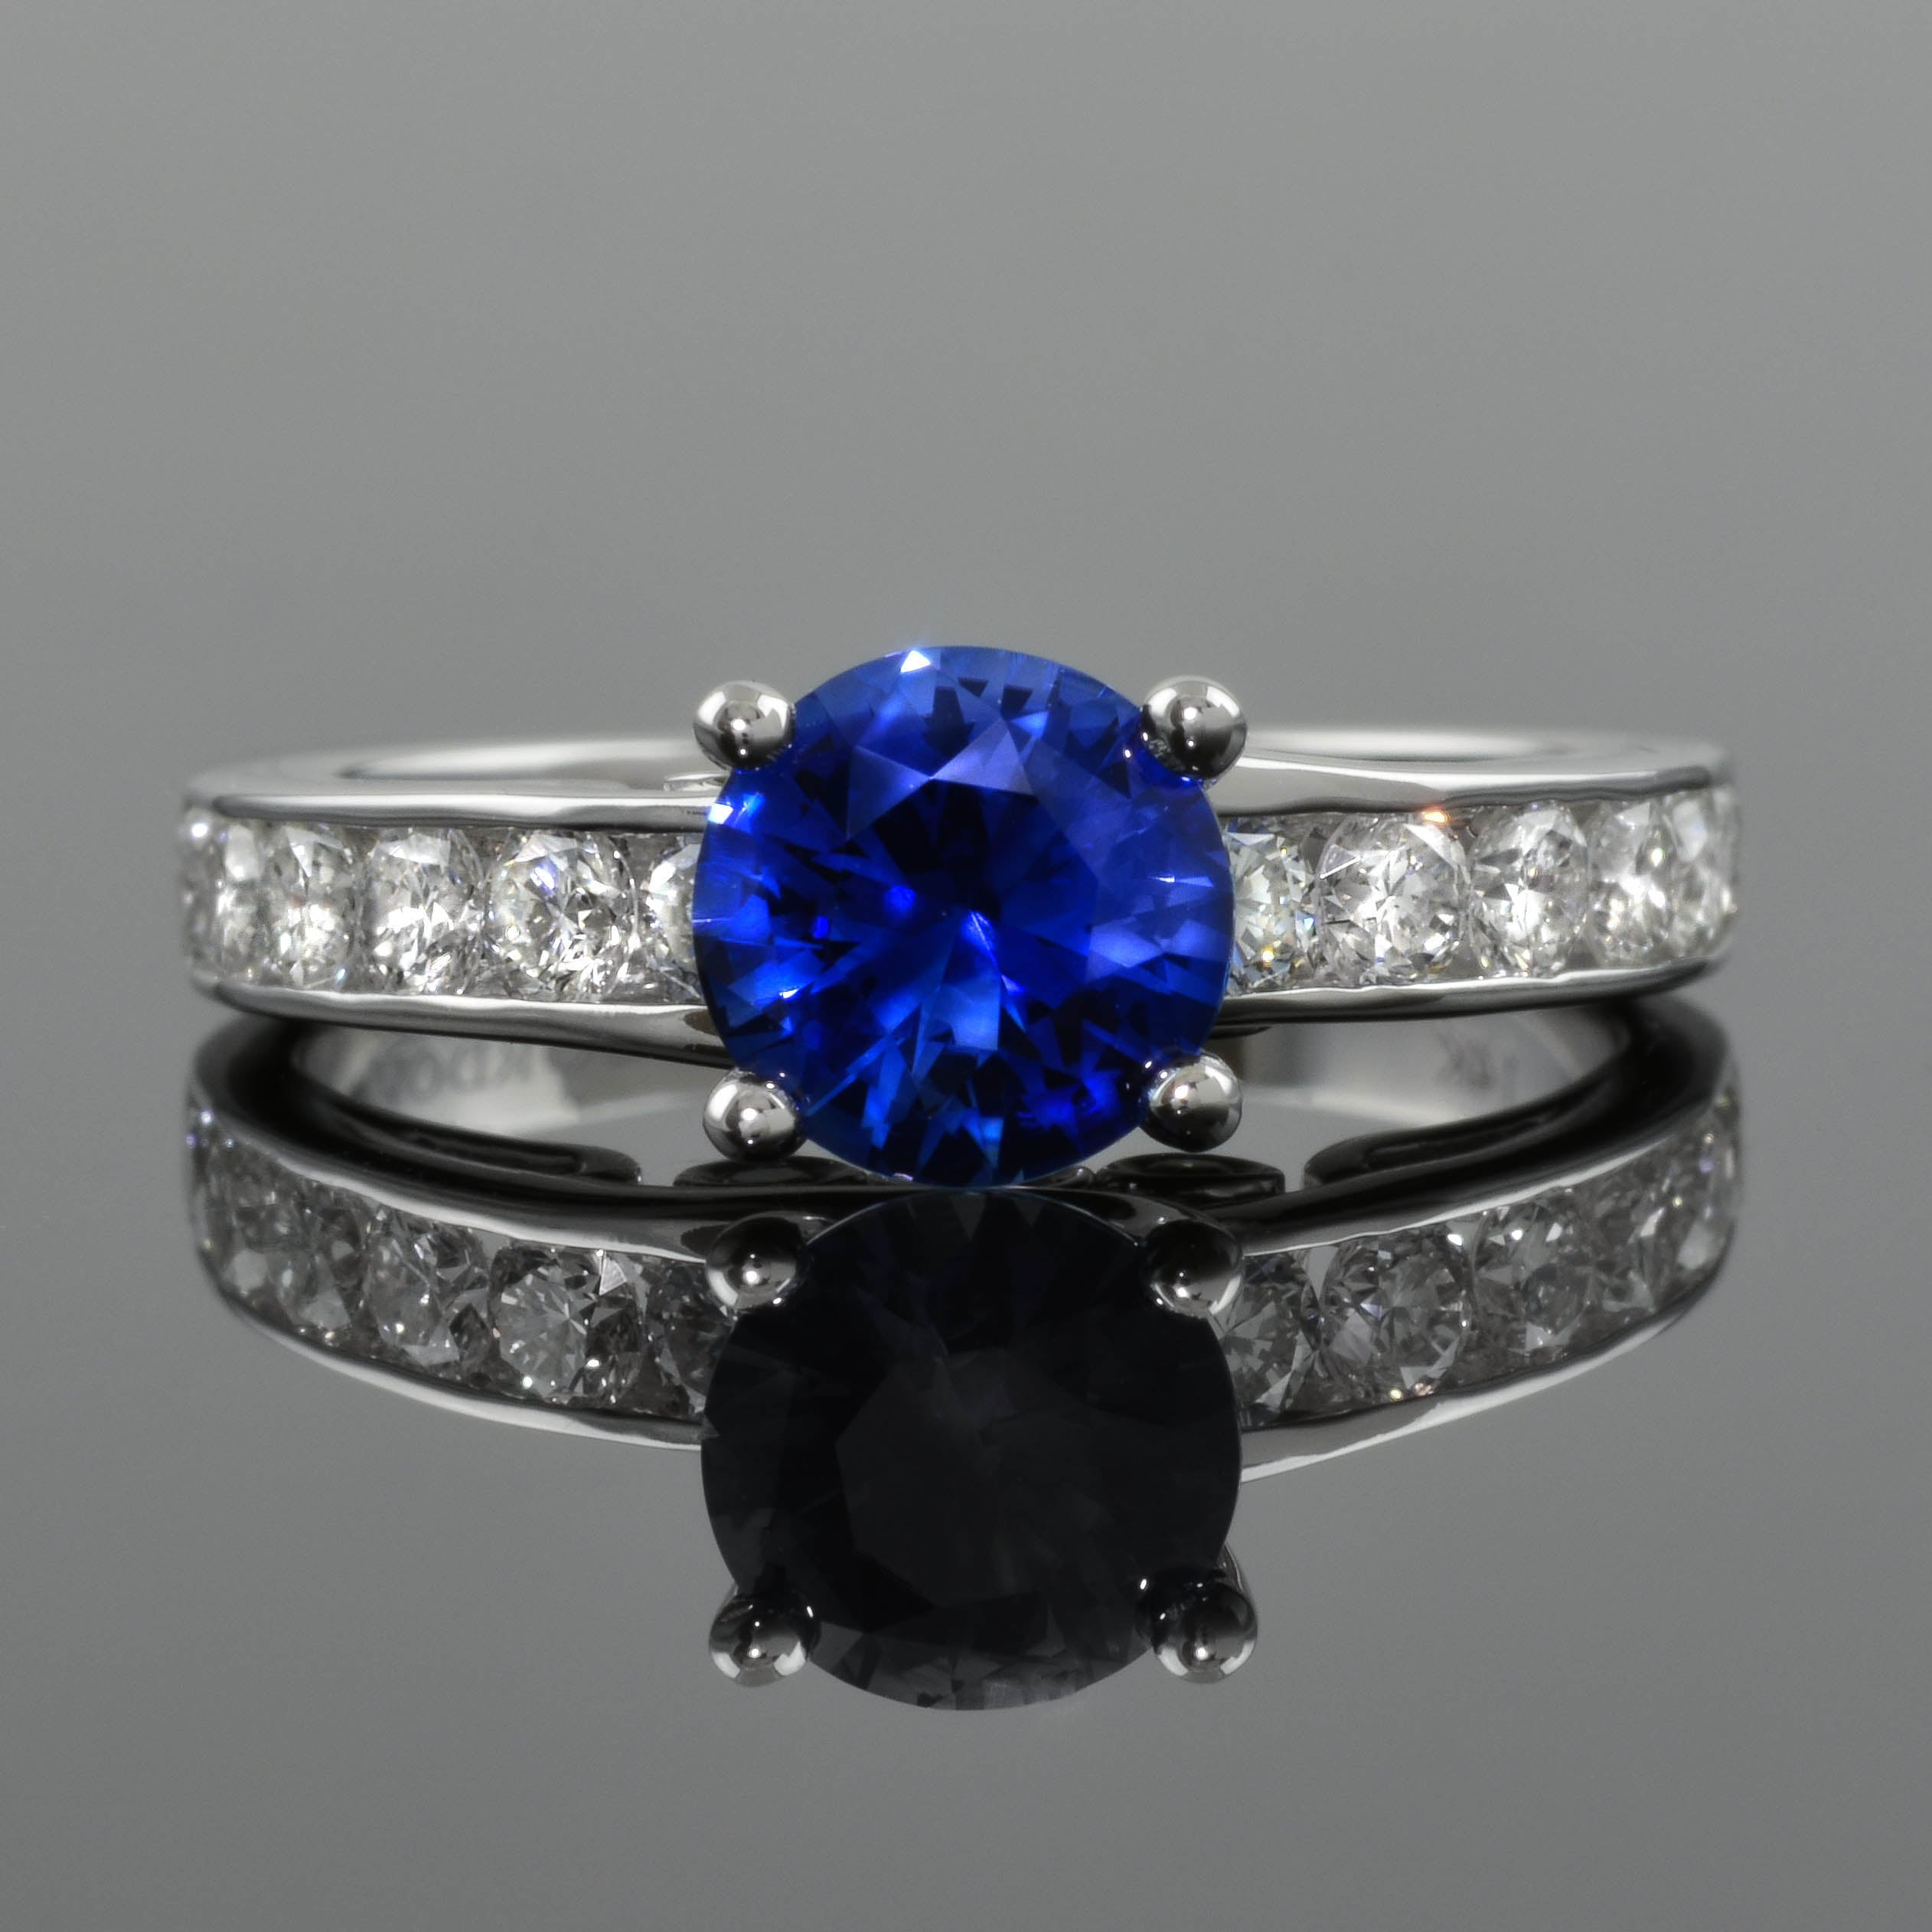 grace pale sapphire the new colored ring meaning rings heart gemstone of blue luxury engagement